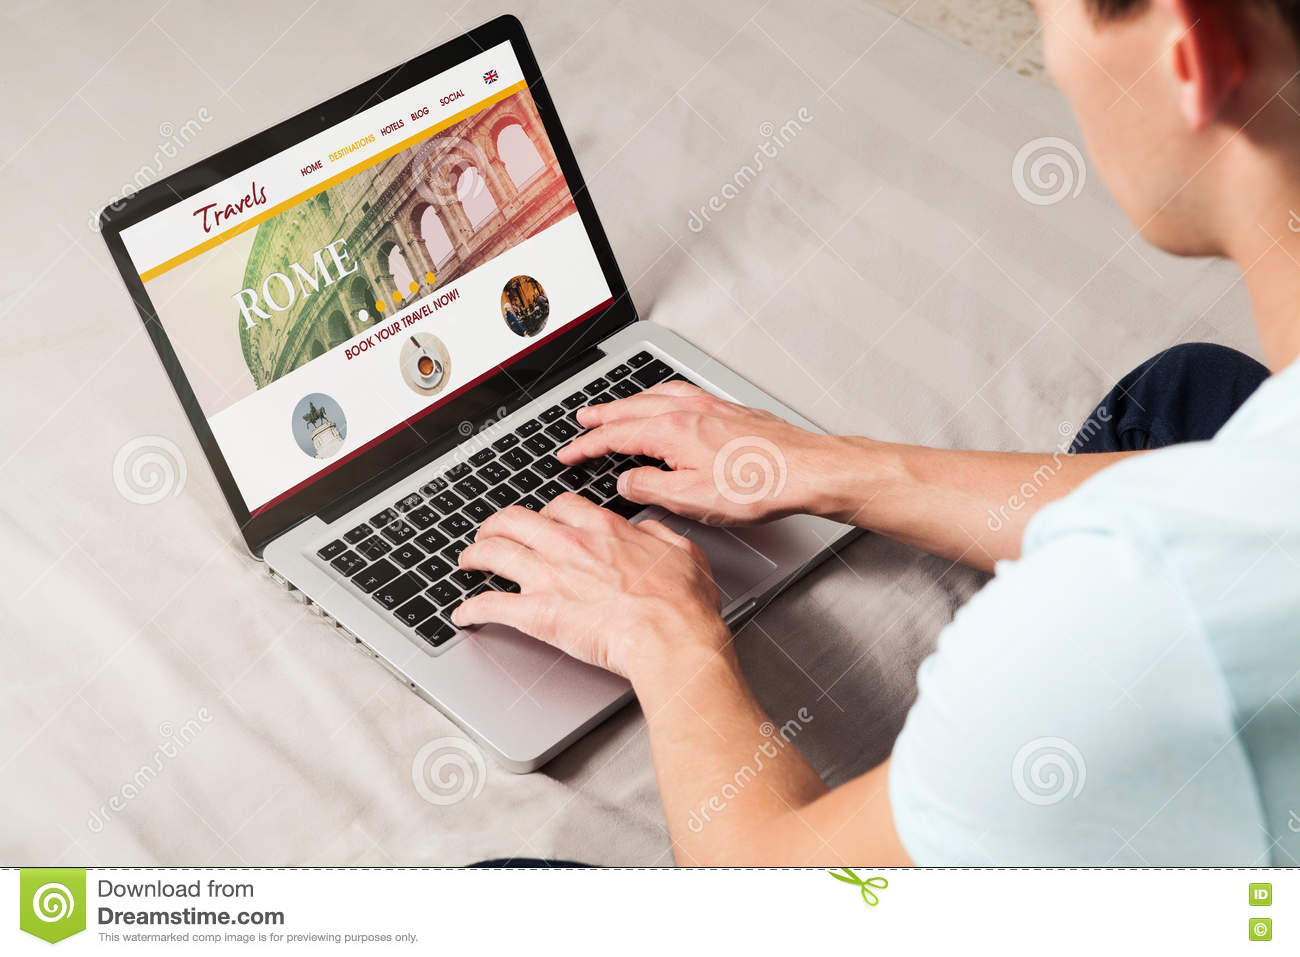 Traveling website in a laptop screen. Man using it to look for travel destination.